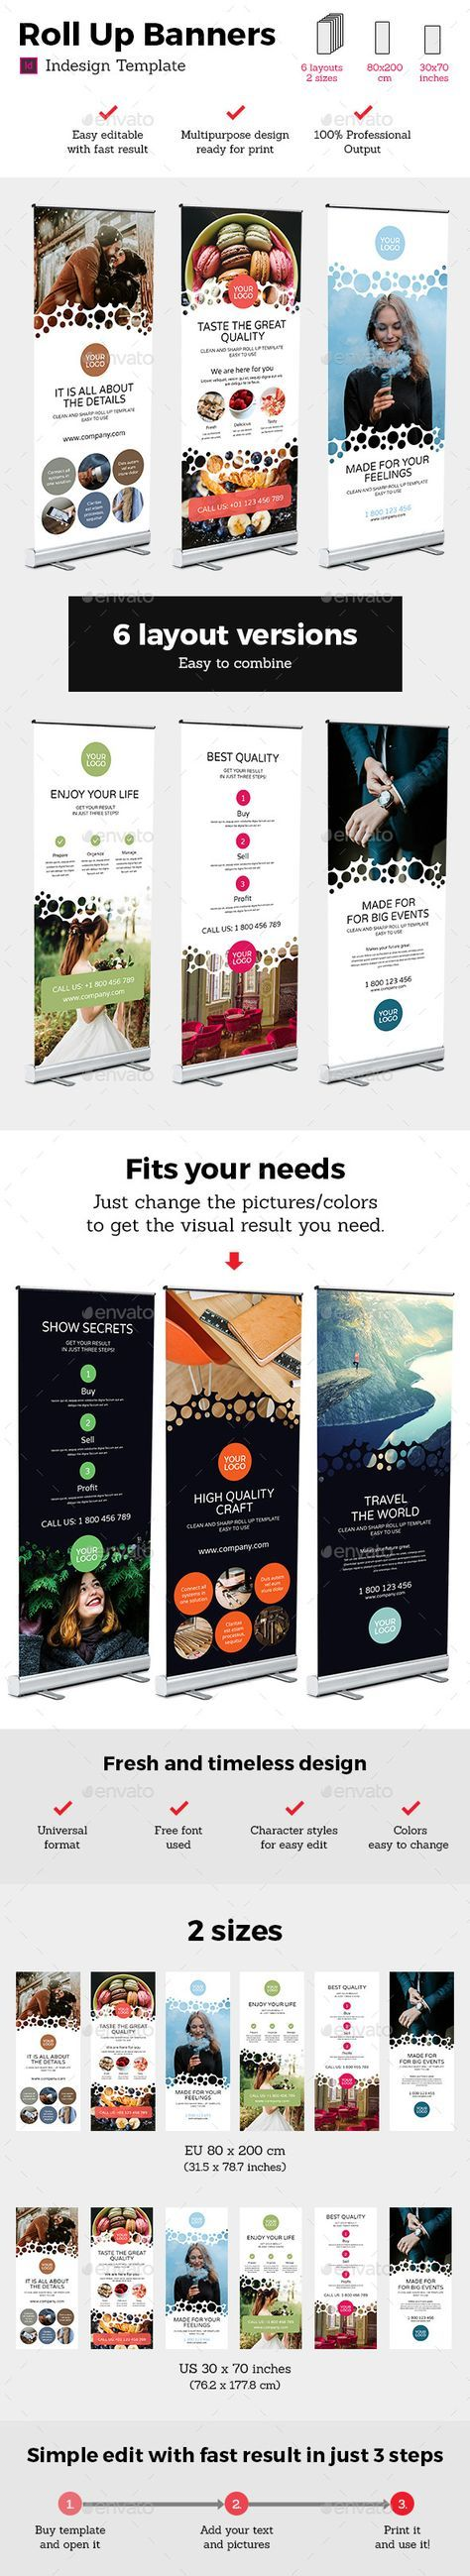 Rollup Stand Banner Display Bubble 12x Indesign Template | Valla ...